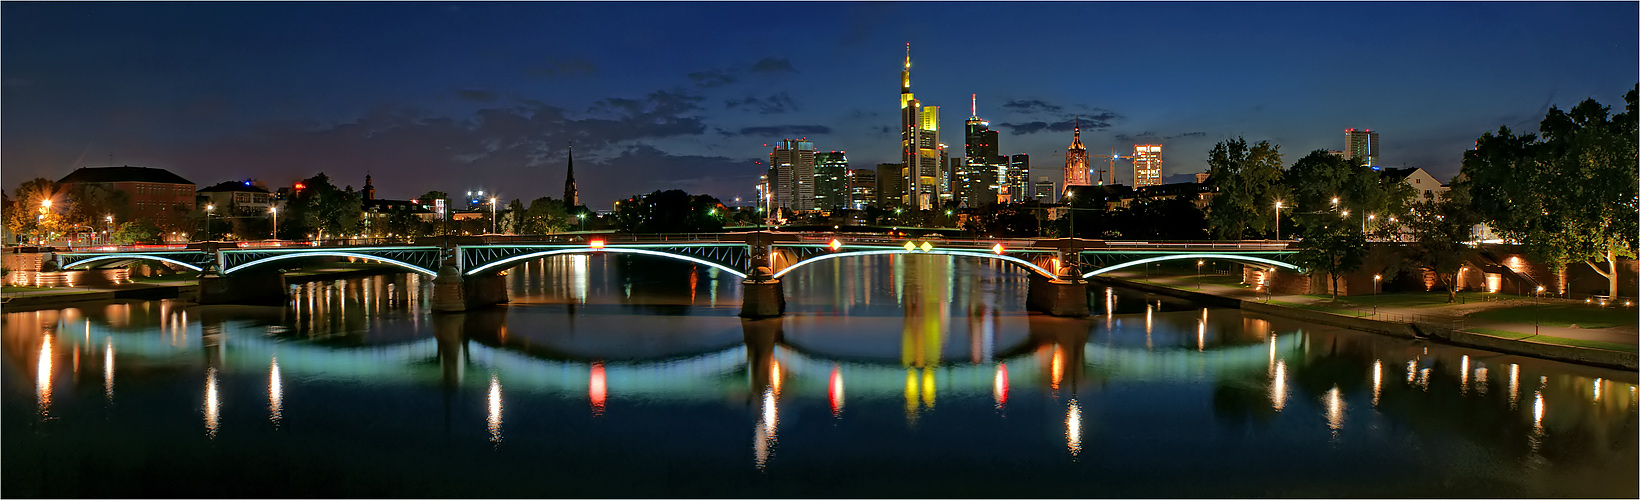 frankfurt skyline foto bild architektur architektur bei nacht frankfurt bilder auf. Black Bedroom Furniture Sets. Home Design Ideas